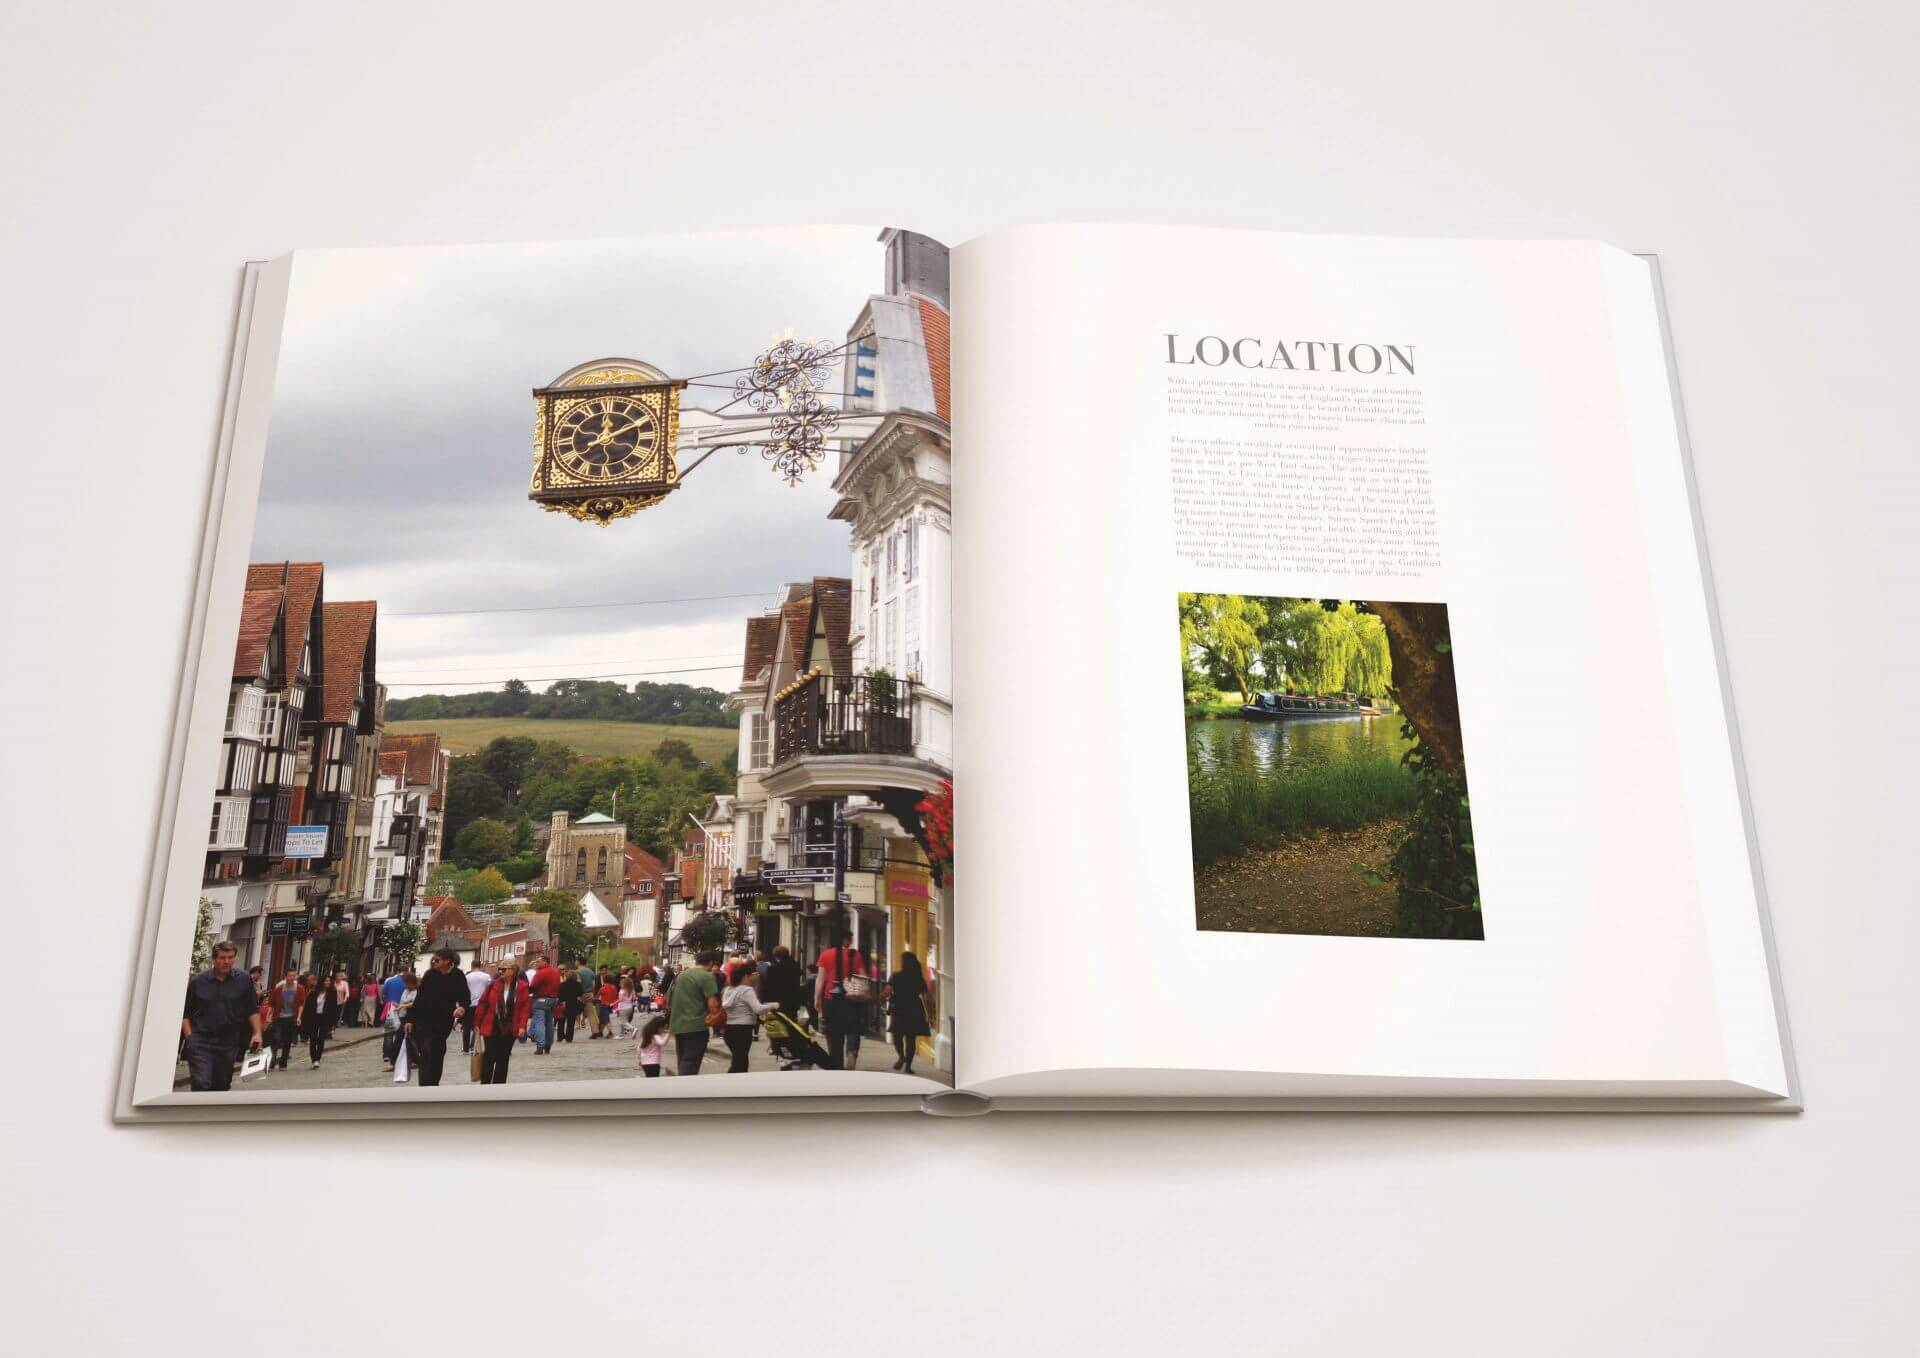 Marketing brochure inside cover for prestigious London residence